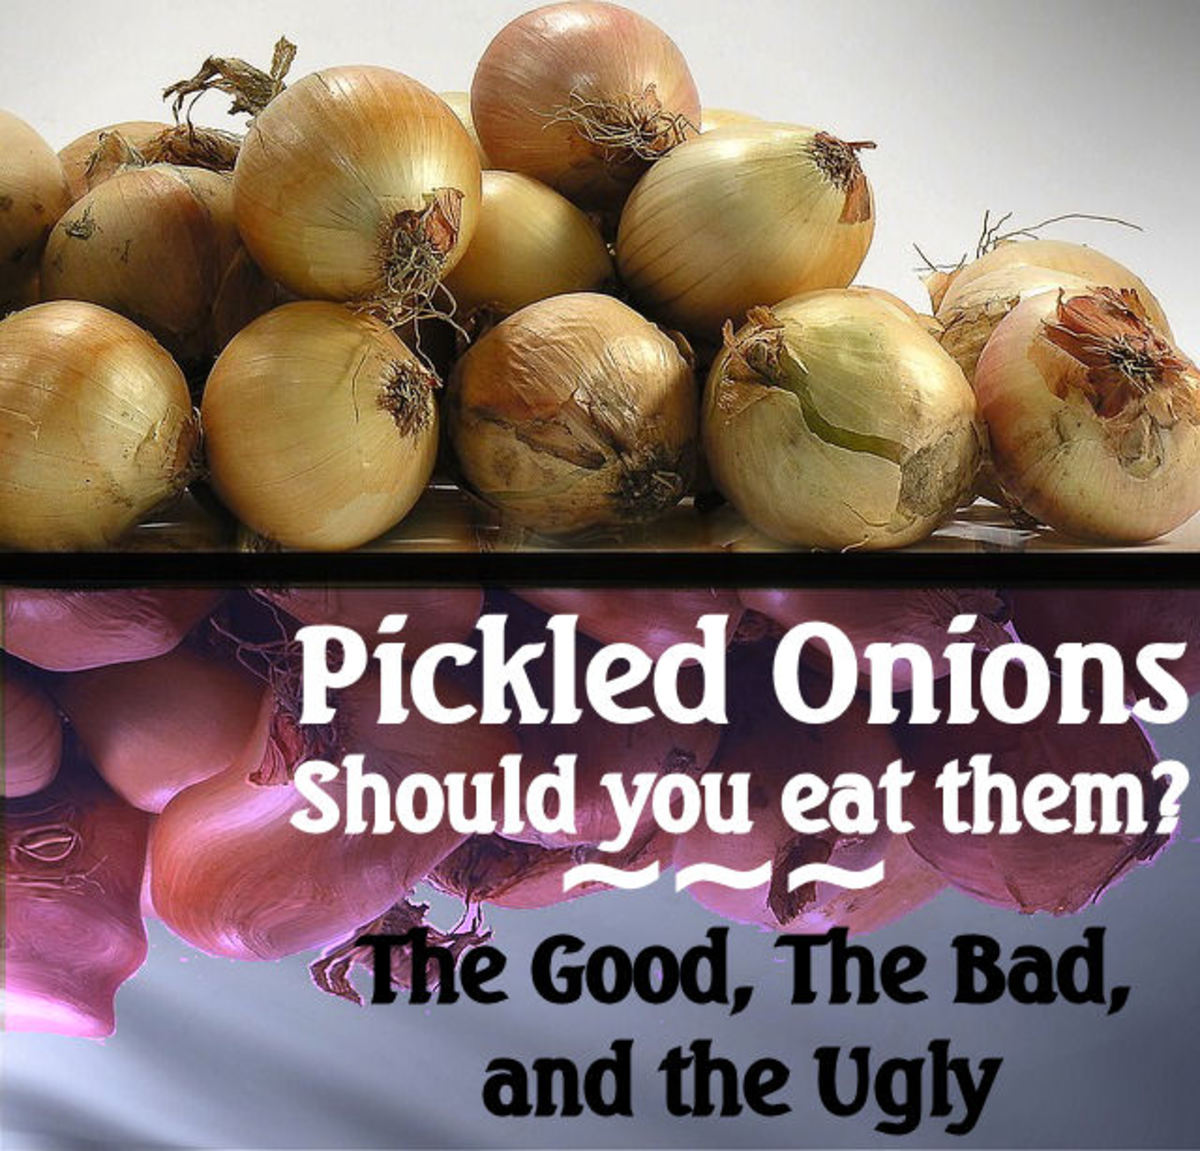 Are Pickled Onions Good or Bad for You - Discover the Health Benefits